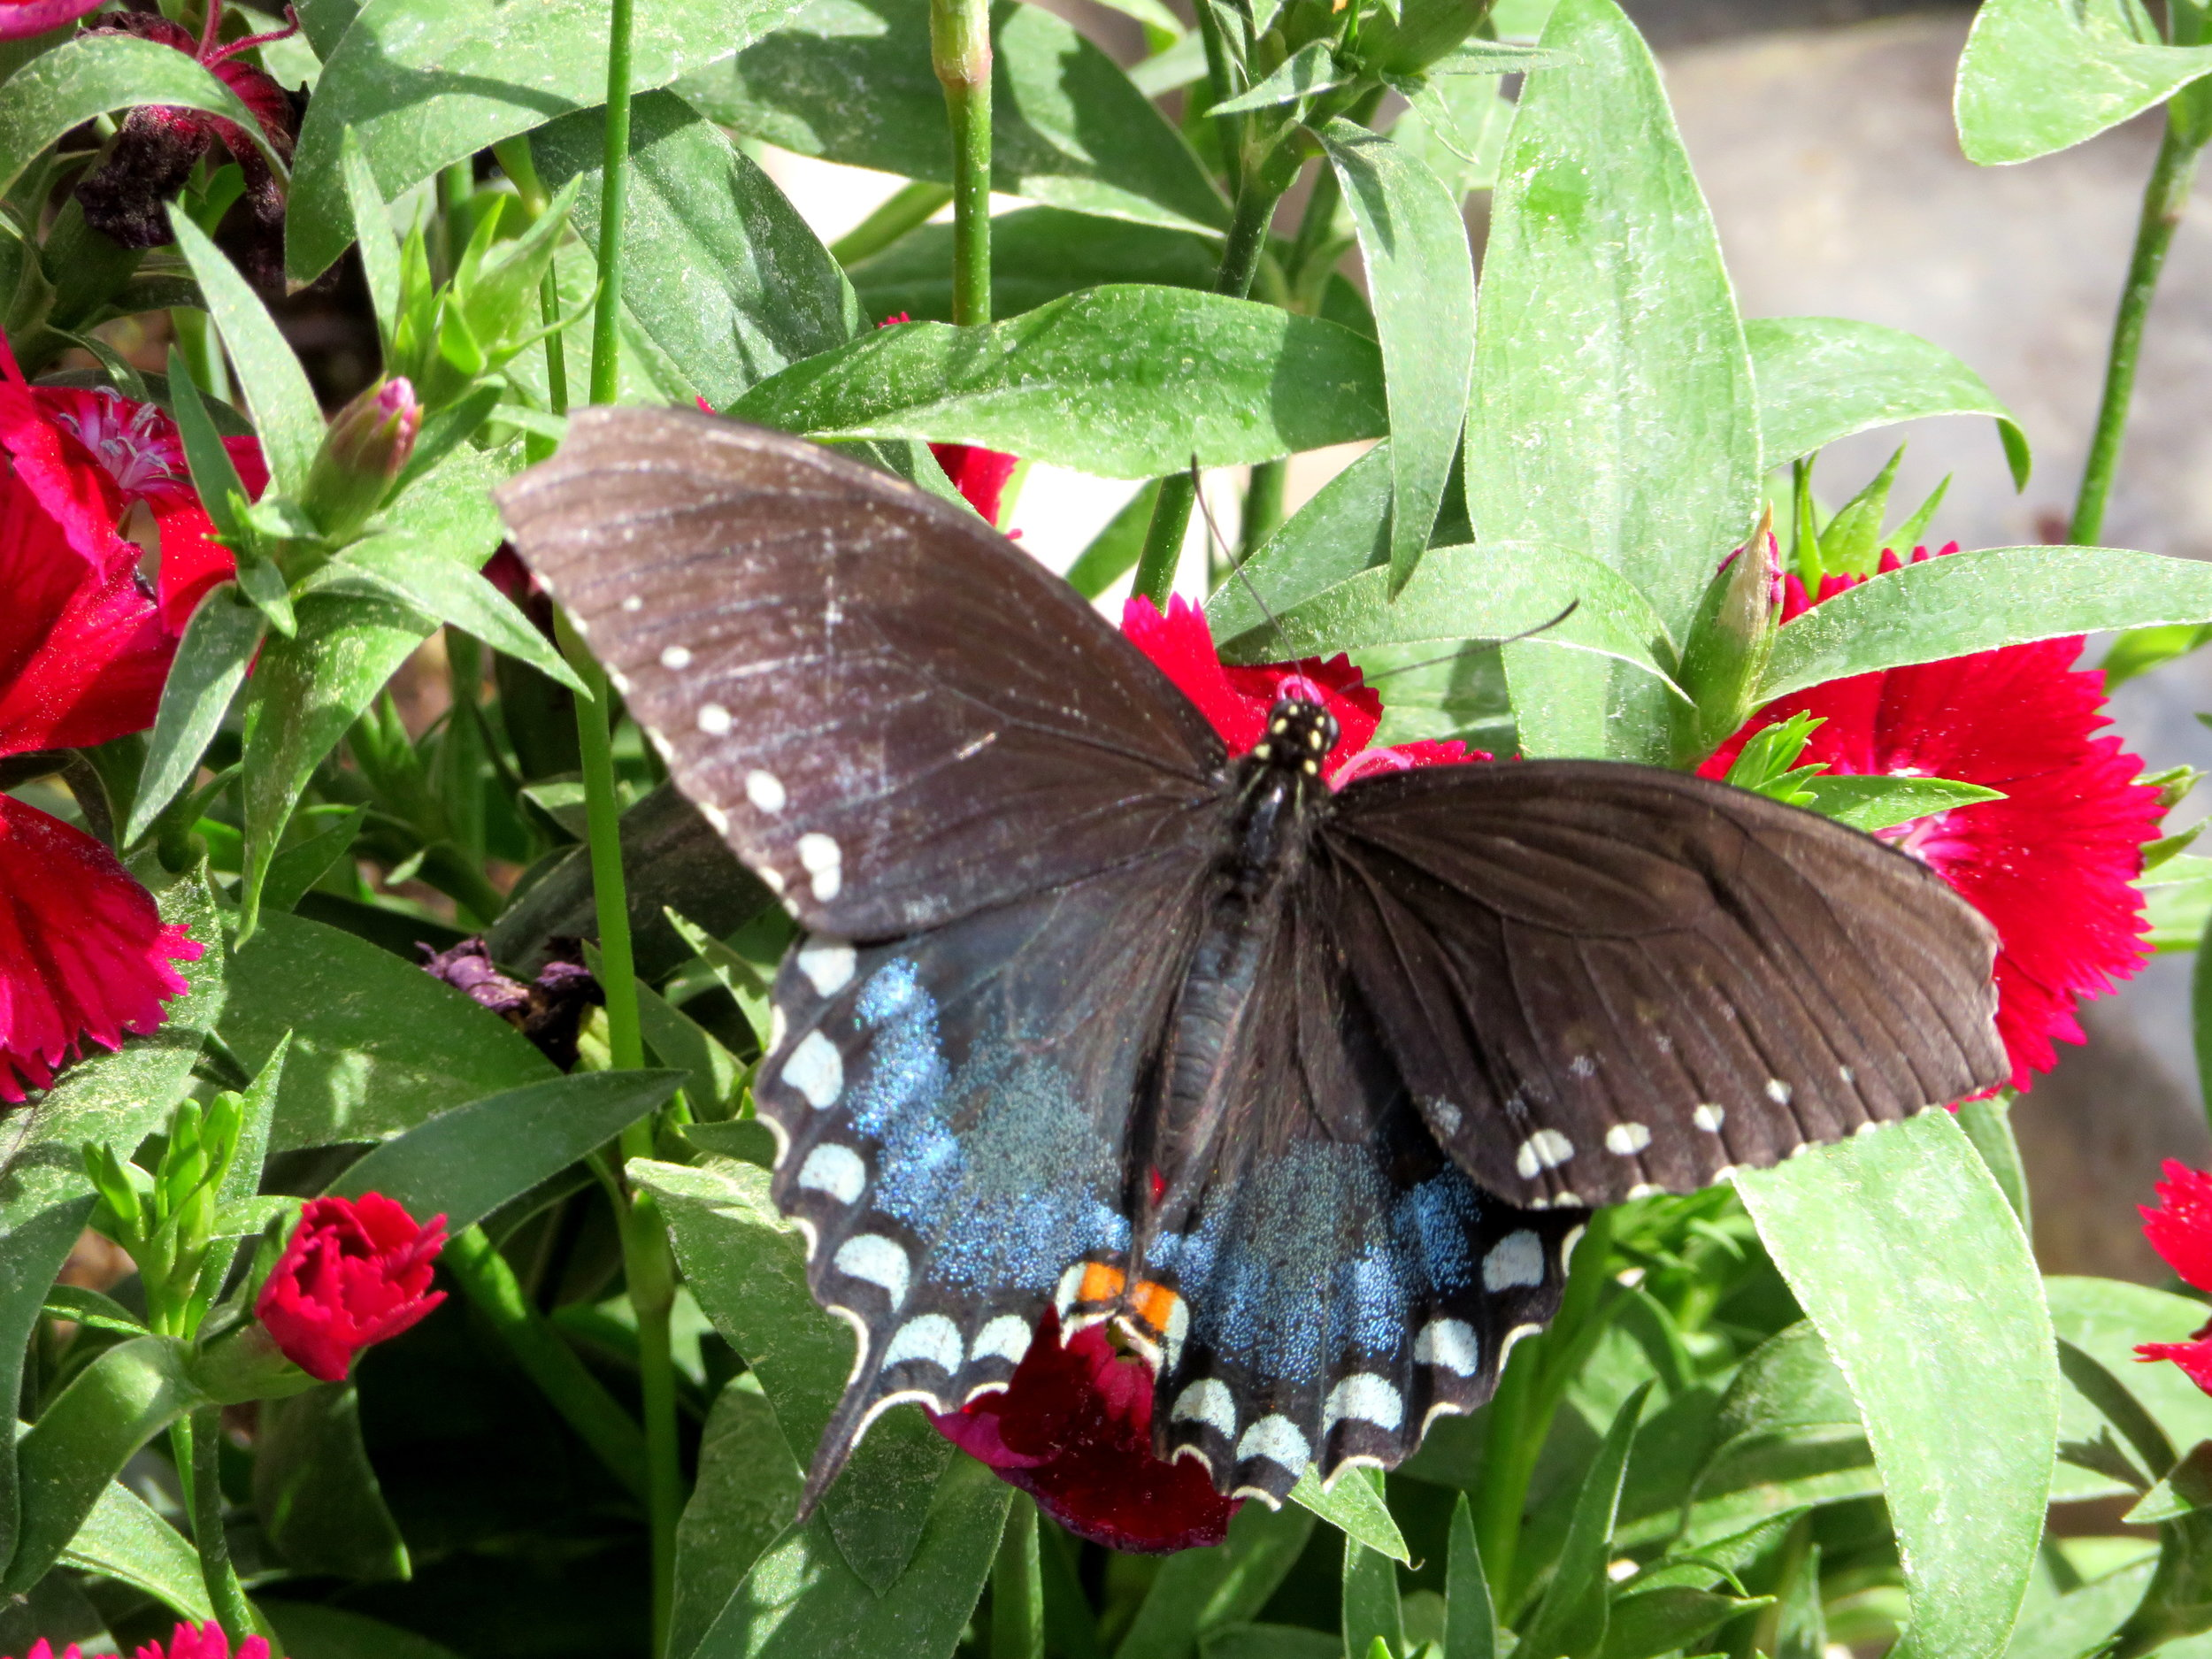 Spicewing swallowtail